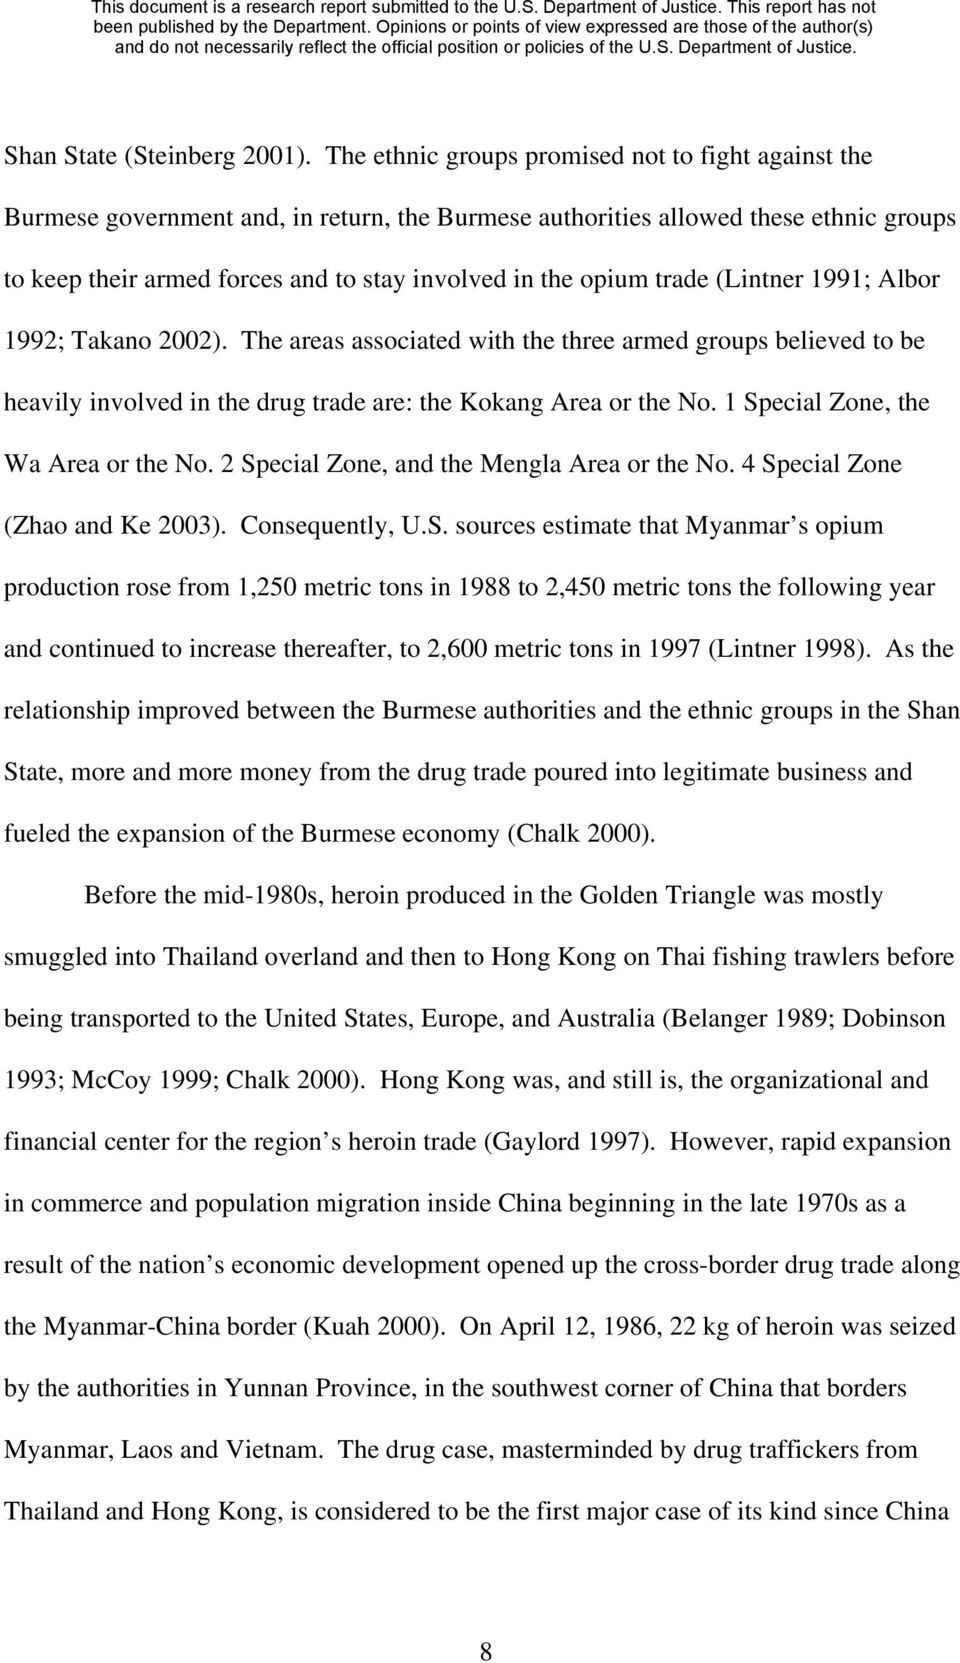 trade (Lintner 1991; Albor 1992; Takano 2002). The areas associated with the three armed groups believed to be heavily involved in the drug trade are: the Kokang Area or the No.